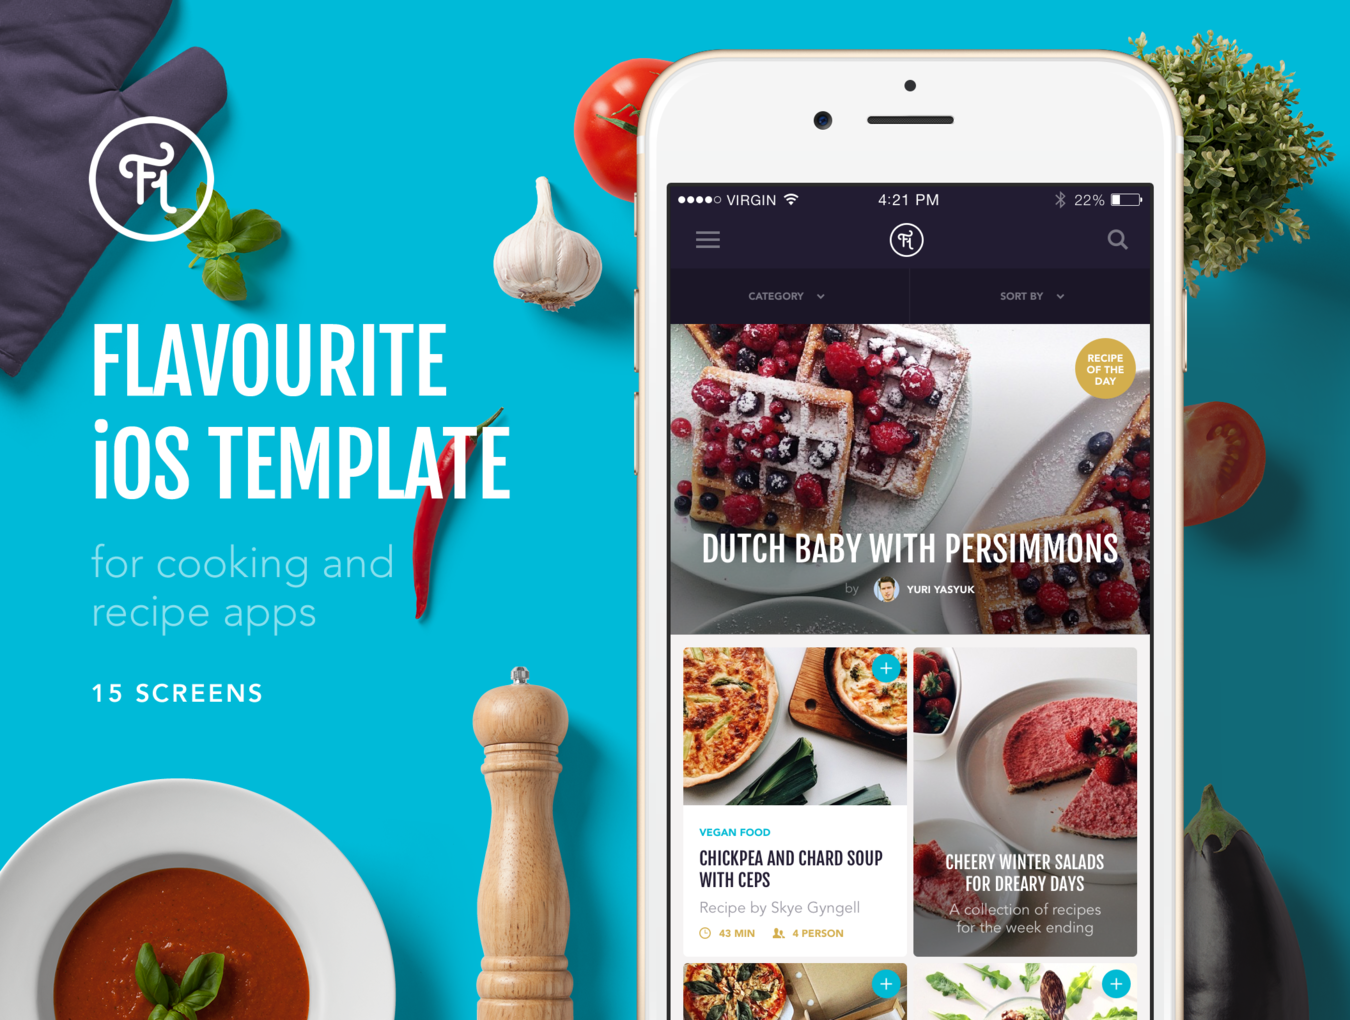 Flavourite ios template social web pinterest cooking app flavourite is an amazing app template for everyone who are crazy about cooking 15 pixel perfect ready to use screens comes in photoshop and sketch formats forumfinder Choice Image